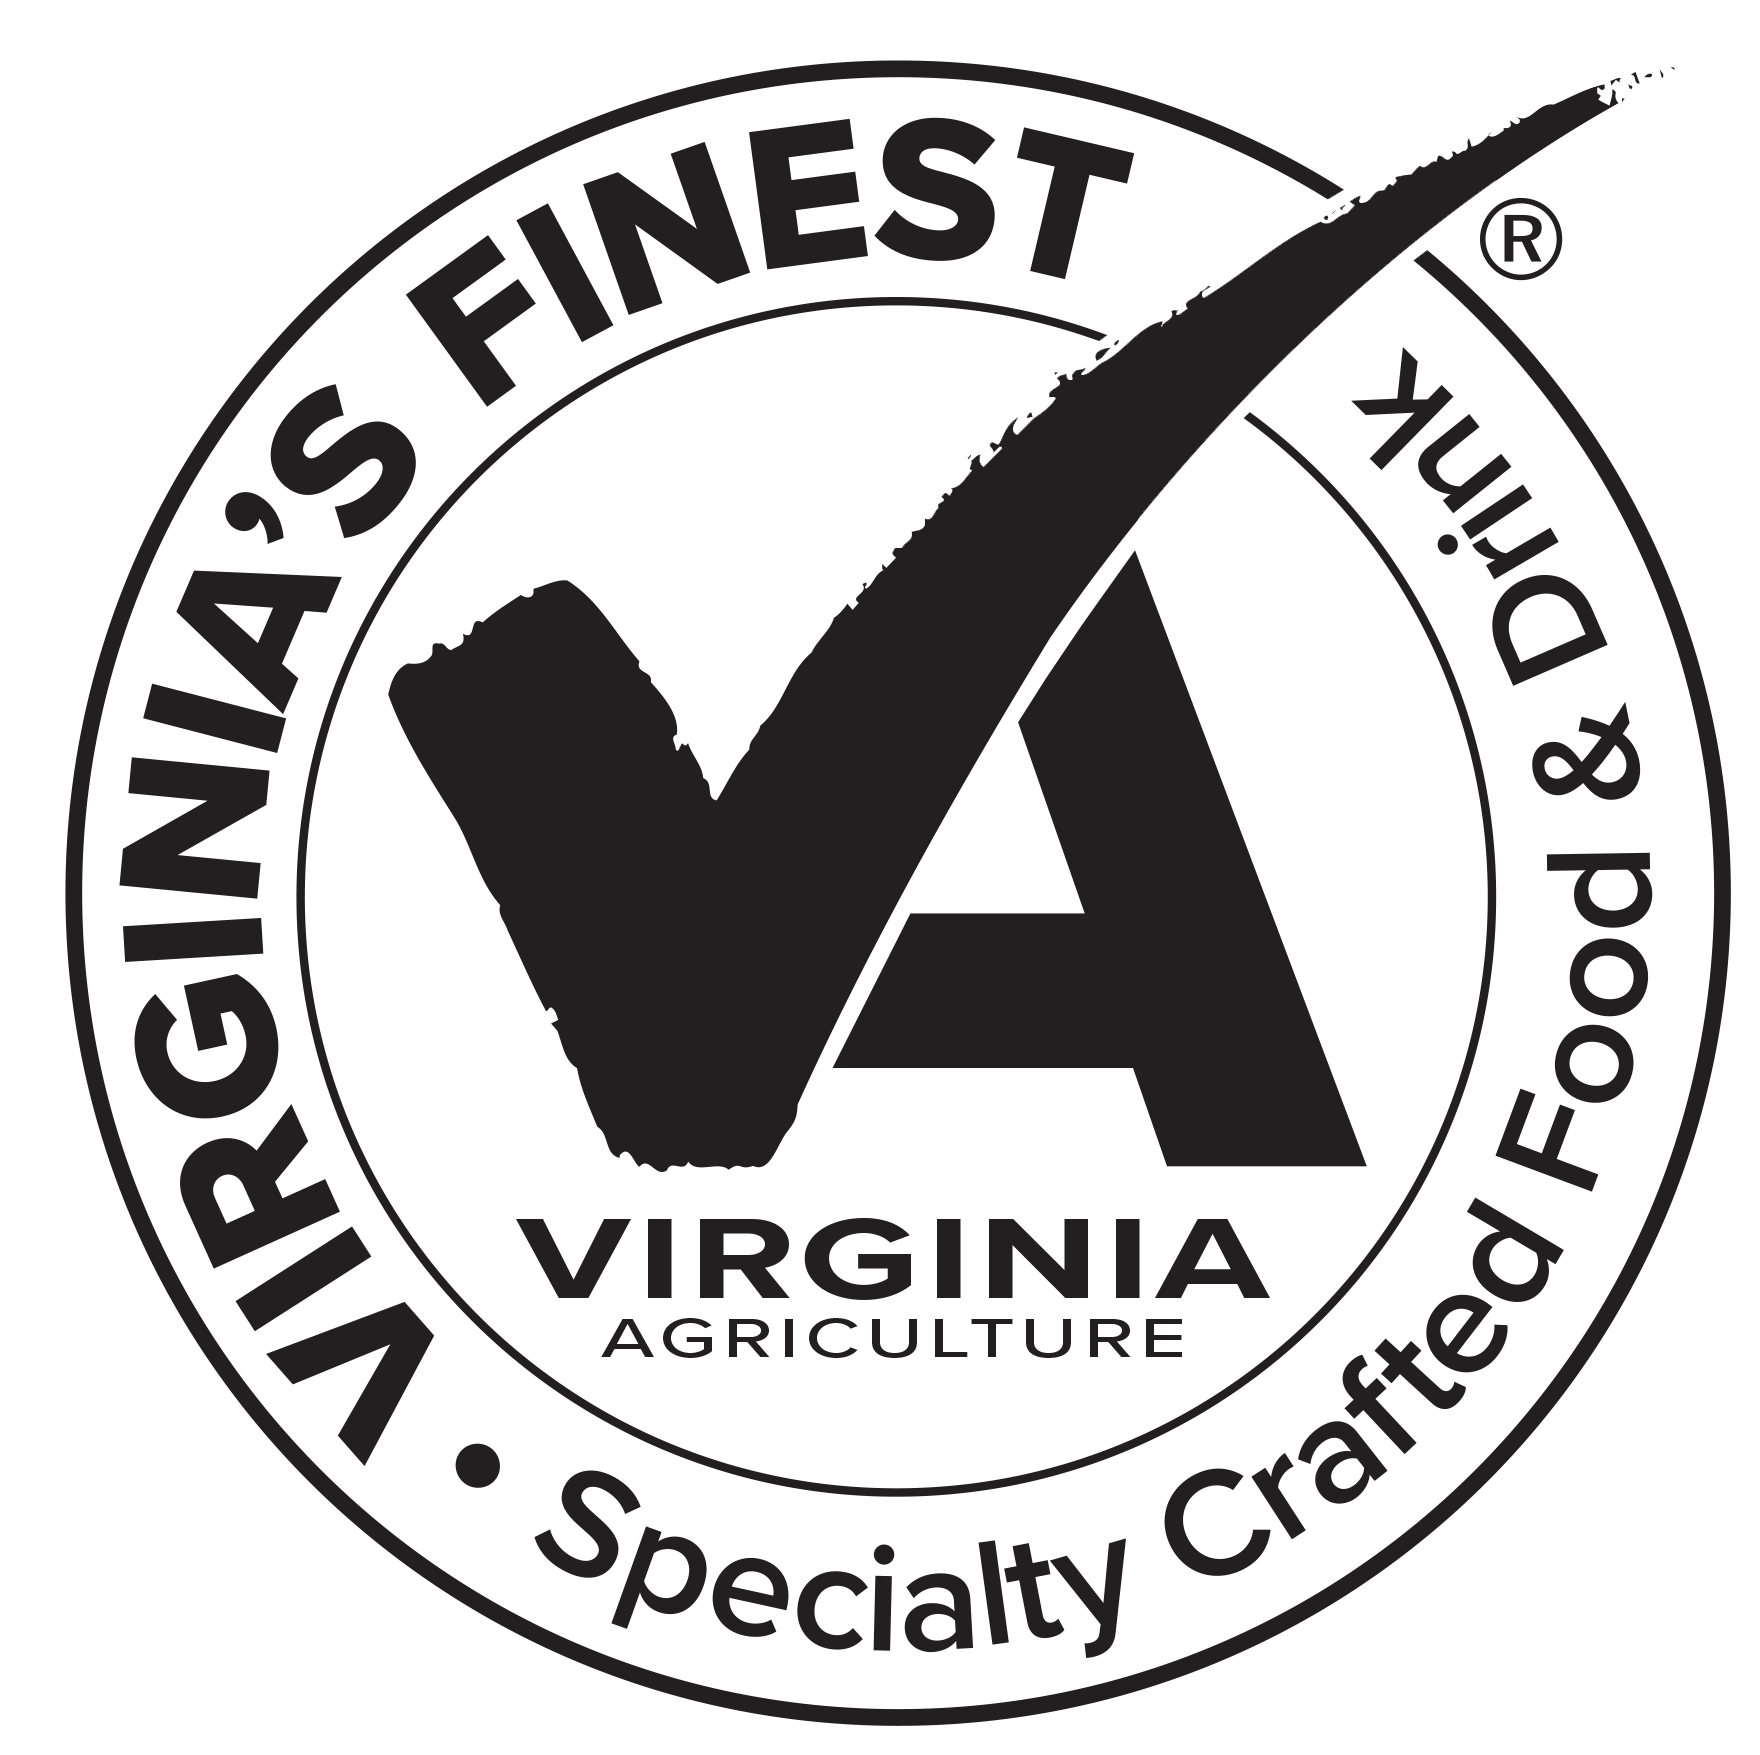 Virginia'sFinest-D6-2.png